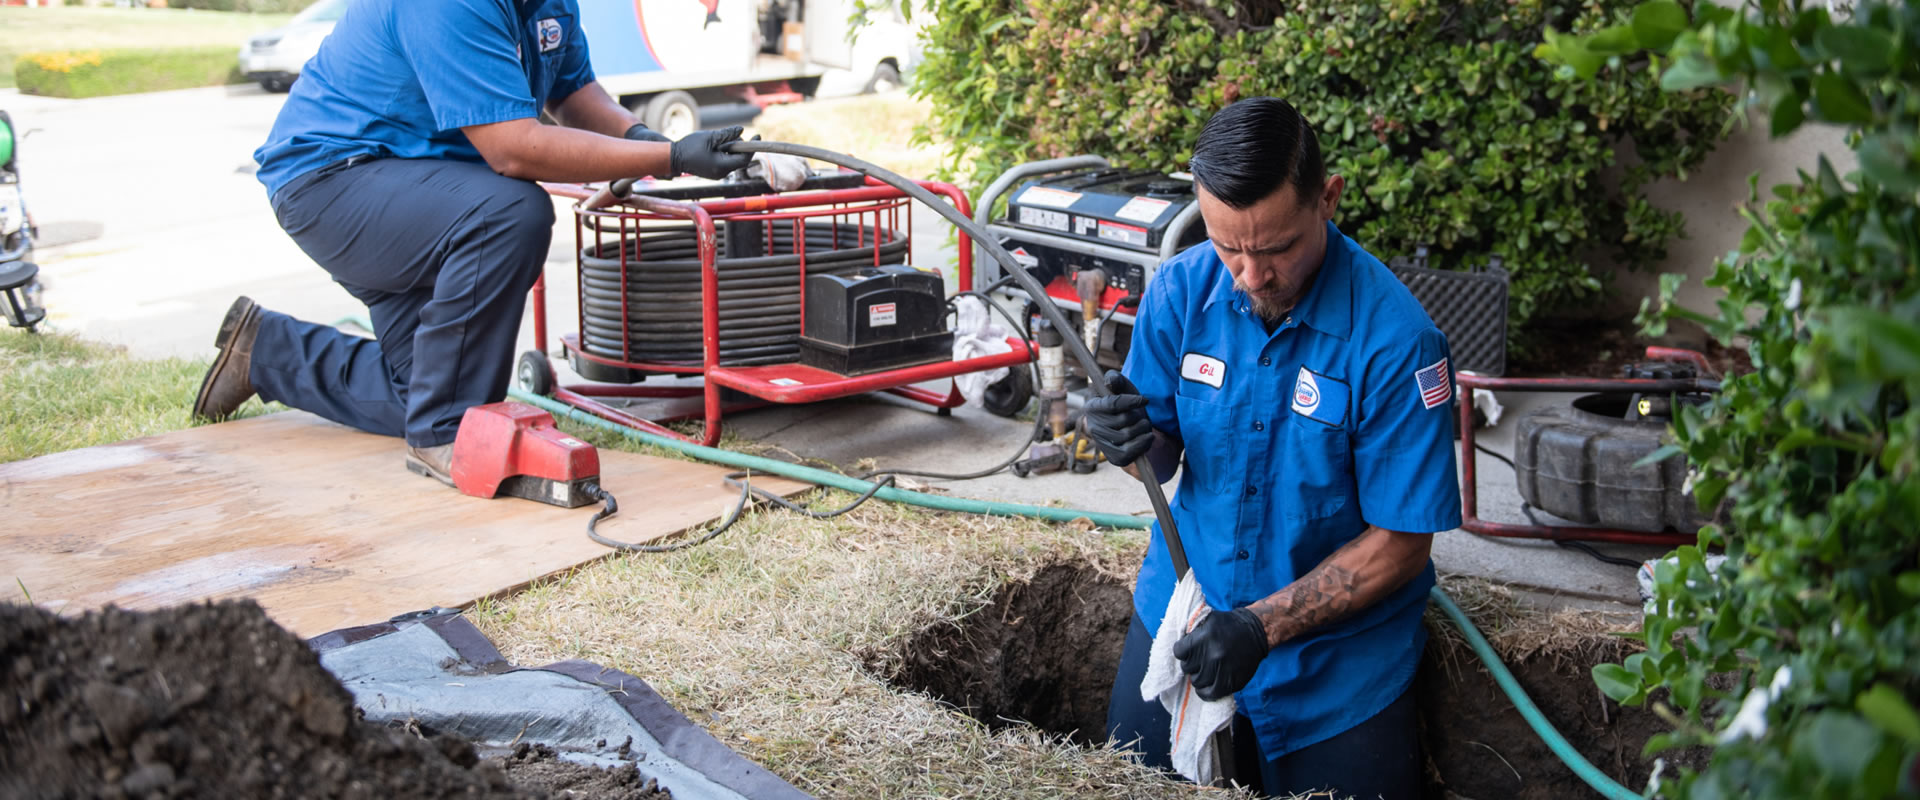 Drain Cleaning in Simi Valley